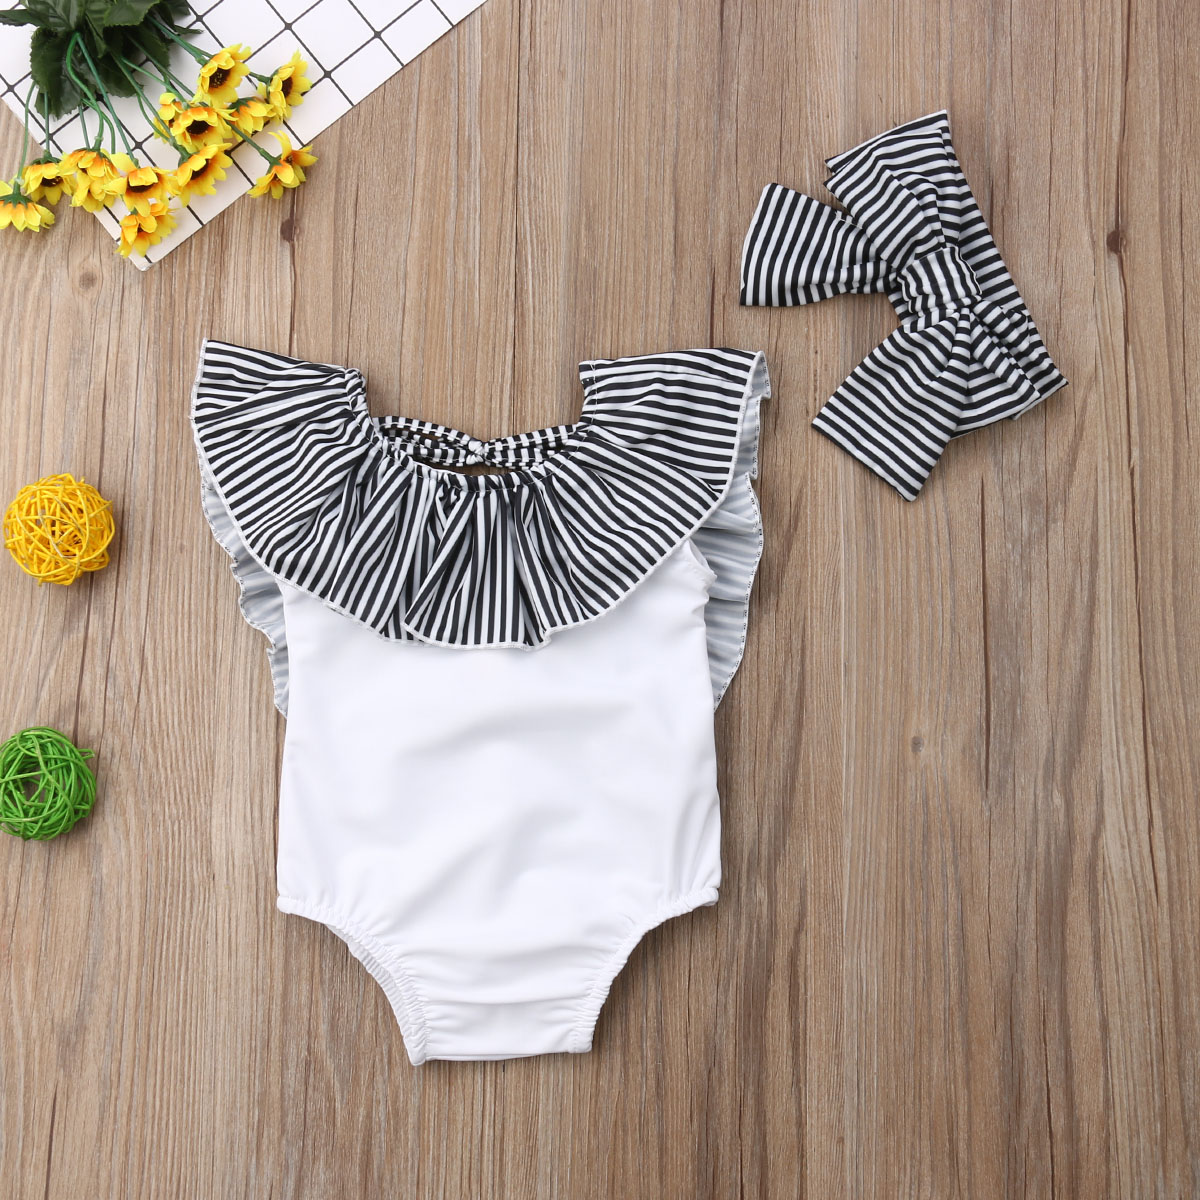 LNGRY Infant Kids Baby Girls Cartoon Striped Bathing Swimsuit Swimwear One Piece Outfit Clothes